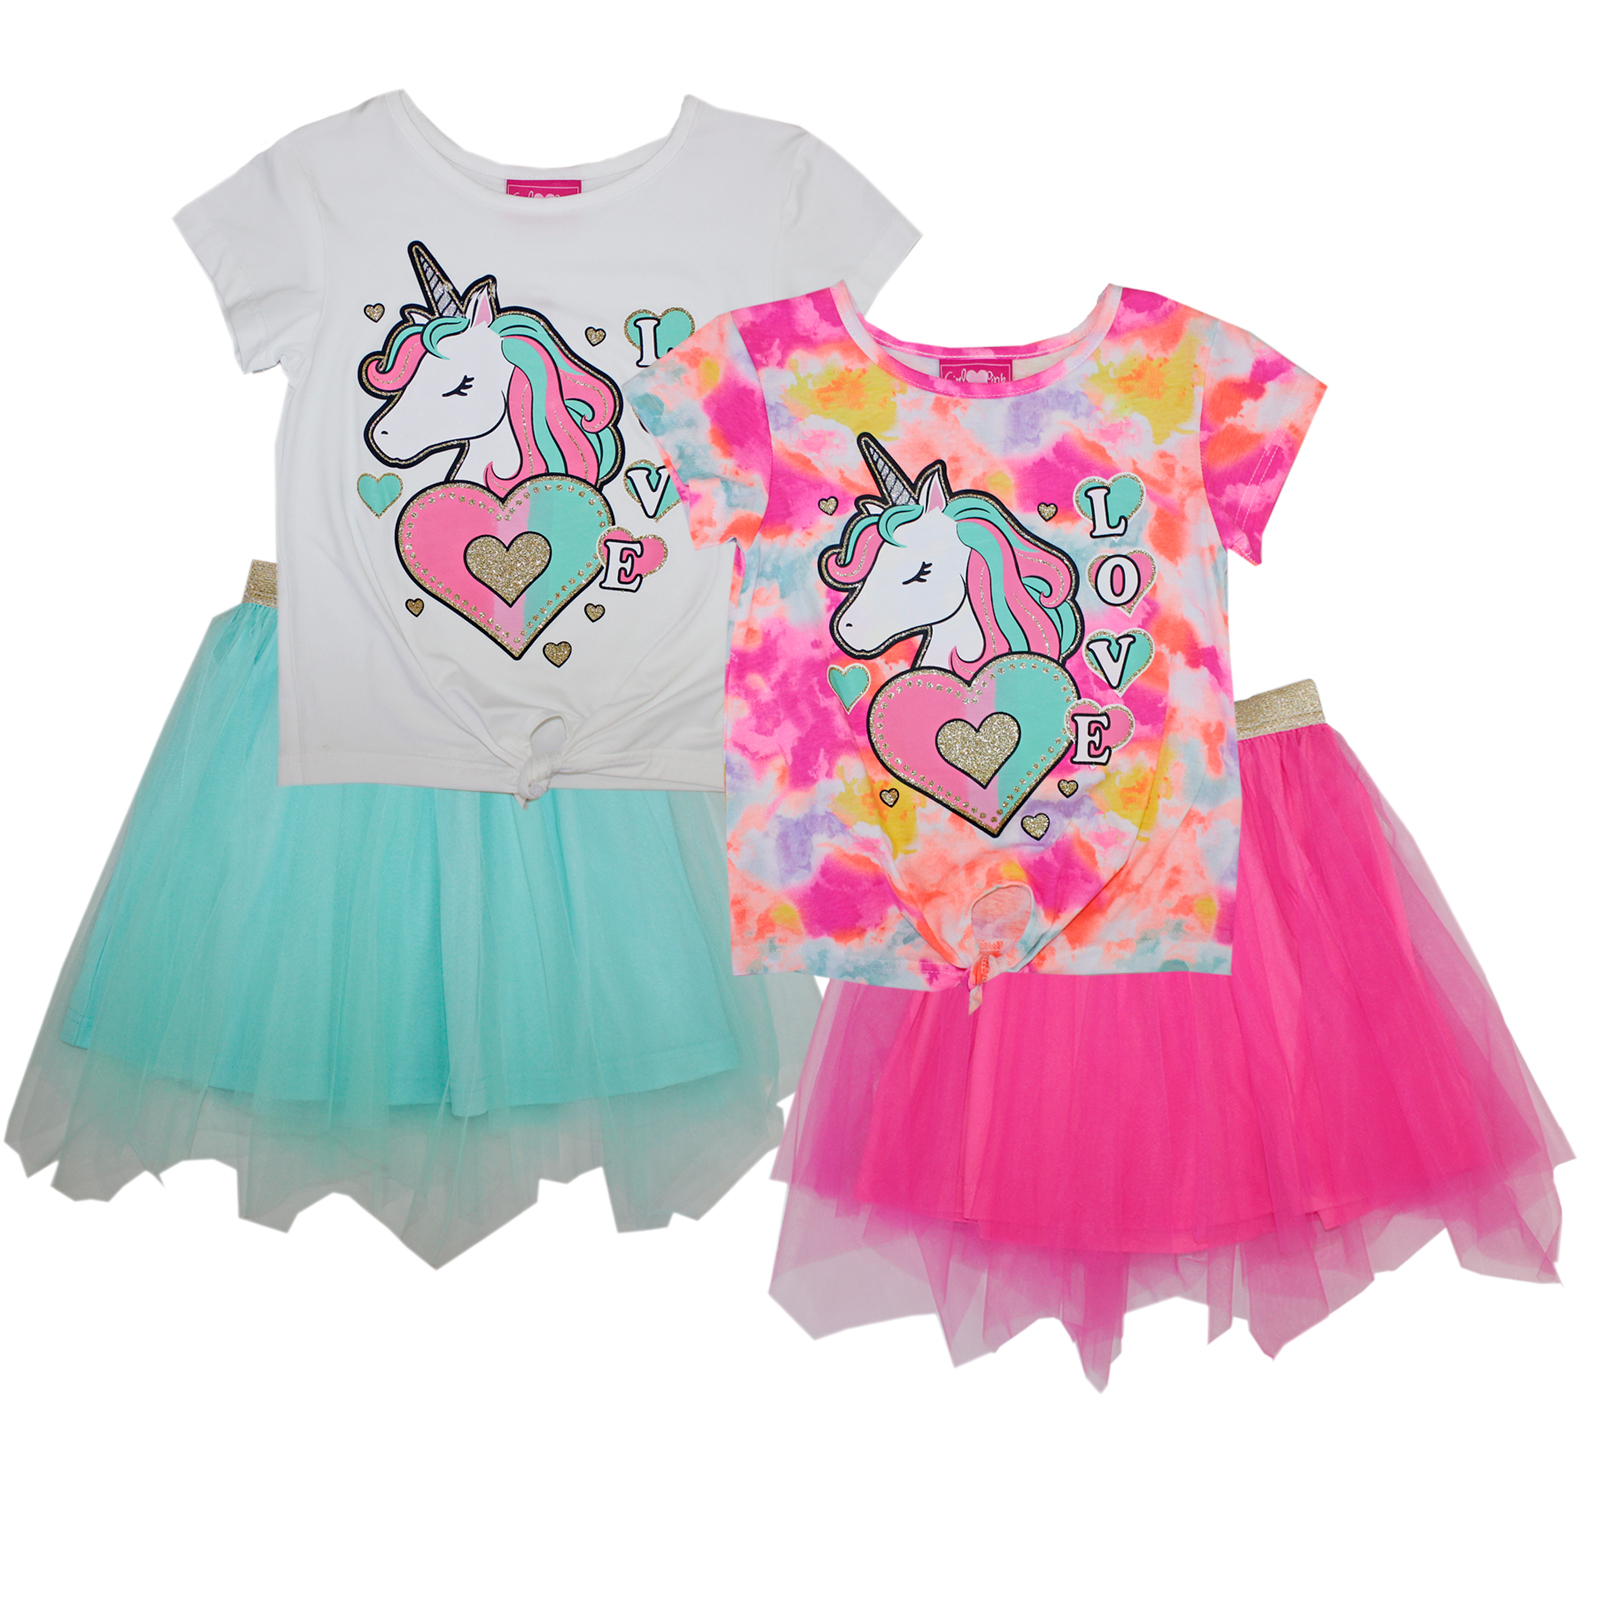 GIRLS PINK 7-12 Unicorn Love Knit Top W Tulle Skirt